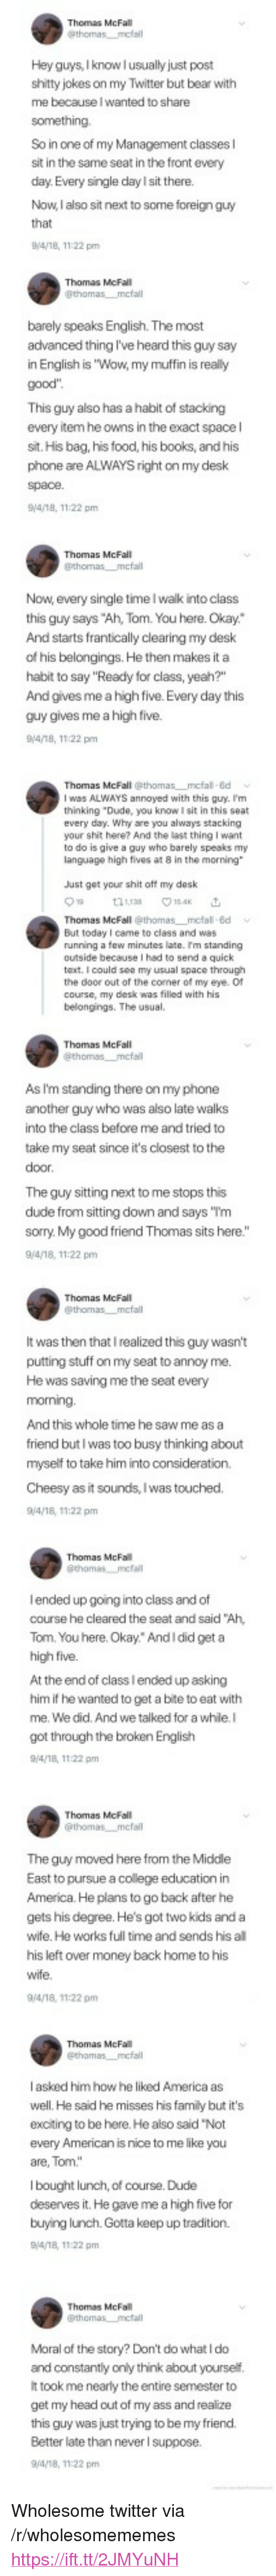 """bear with me: Hey guys, Iknow l usually just post  shitty jokes on my Twitter but bear with  me because I wanted to share  So in one of my Management classes l  sit in the same seat in the front every  day.Every single day l sit there.  Now, I also sit next to some foreign guy  Thomas McFall  barely speaks English. The most  advanced thing I've heard this guy say  in English is """"Wow, my muffin is really  This guy also has a habit of stacking  every item he owns in the exact space l  sit. His bag, his food, his books, and his  phone are ALWAYS right on my desk  9/4/18, 1122 pm  Thomas McFall  Now, every single time I walk into class  this guy says """"Ah, Tom. You here. Okay.""""  And starts frantically clearing my desk  of his belongings. He then makes it a  habit to say """"Ready for class, yeah?""""  And gives me a high five. Every day this  guy gives me a high five.  Thomas McFall @thomas mcfal 8d  I was ALWAYS annoyed with this guy. I'm  thinking """"Dude, you know I sit in this seat  every day. Why are you always stacking  your shit here? And the last thing I want  to do is give a guy who barely speaks my  language high fives at 8 in the morning  Just get your shit oft my desk  Thomas McFall @thomas mcfal 8d  But today I came to class and was  running a few minutes late. Im standing  outside because I had to send a quick  text. I could see my usual space through  the door out of the comer of my eye. O  course, my desk was filled with his  belongings. The usual.  Thomas McFall  As I'm standing there on my phone  another guy who was also late walks  into the class before me and tried to  take my seat since it's closest to the  The guy sitting next to me stops this  dude from sitting don and says """"Tm  sorry. My good friend Thomas sits here.""""  9/4/18, 11:22 pm  It was then that I realized this guy wasn't  putting stuff on my seat to annoy me  He was saving me the seat every  And this whole time he saw me as a  friend butl was too busy thinking about  myself to take him into consi"""